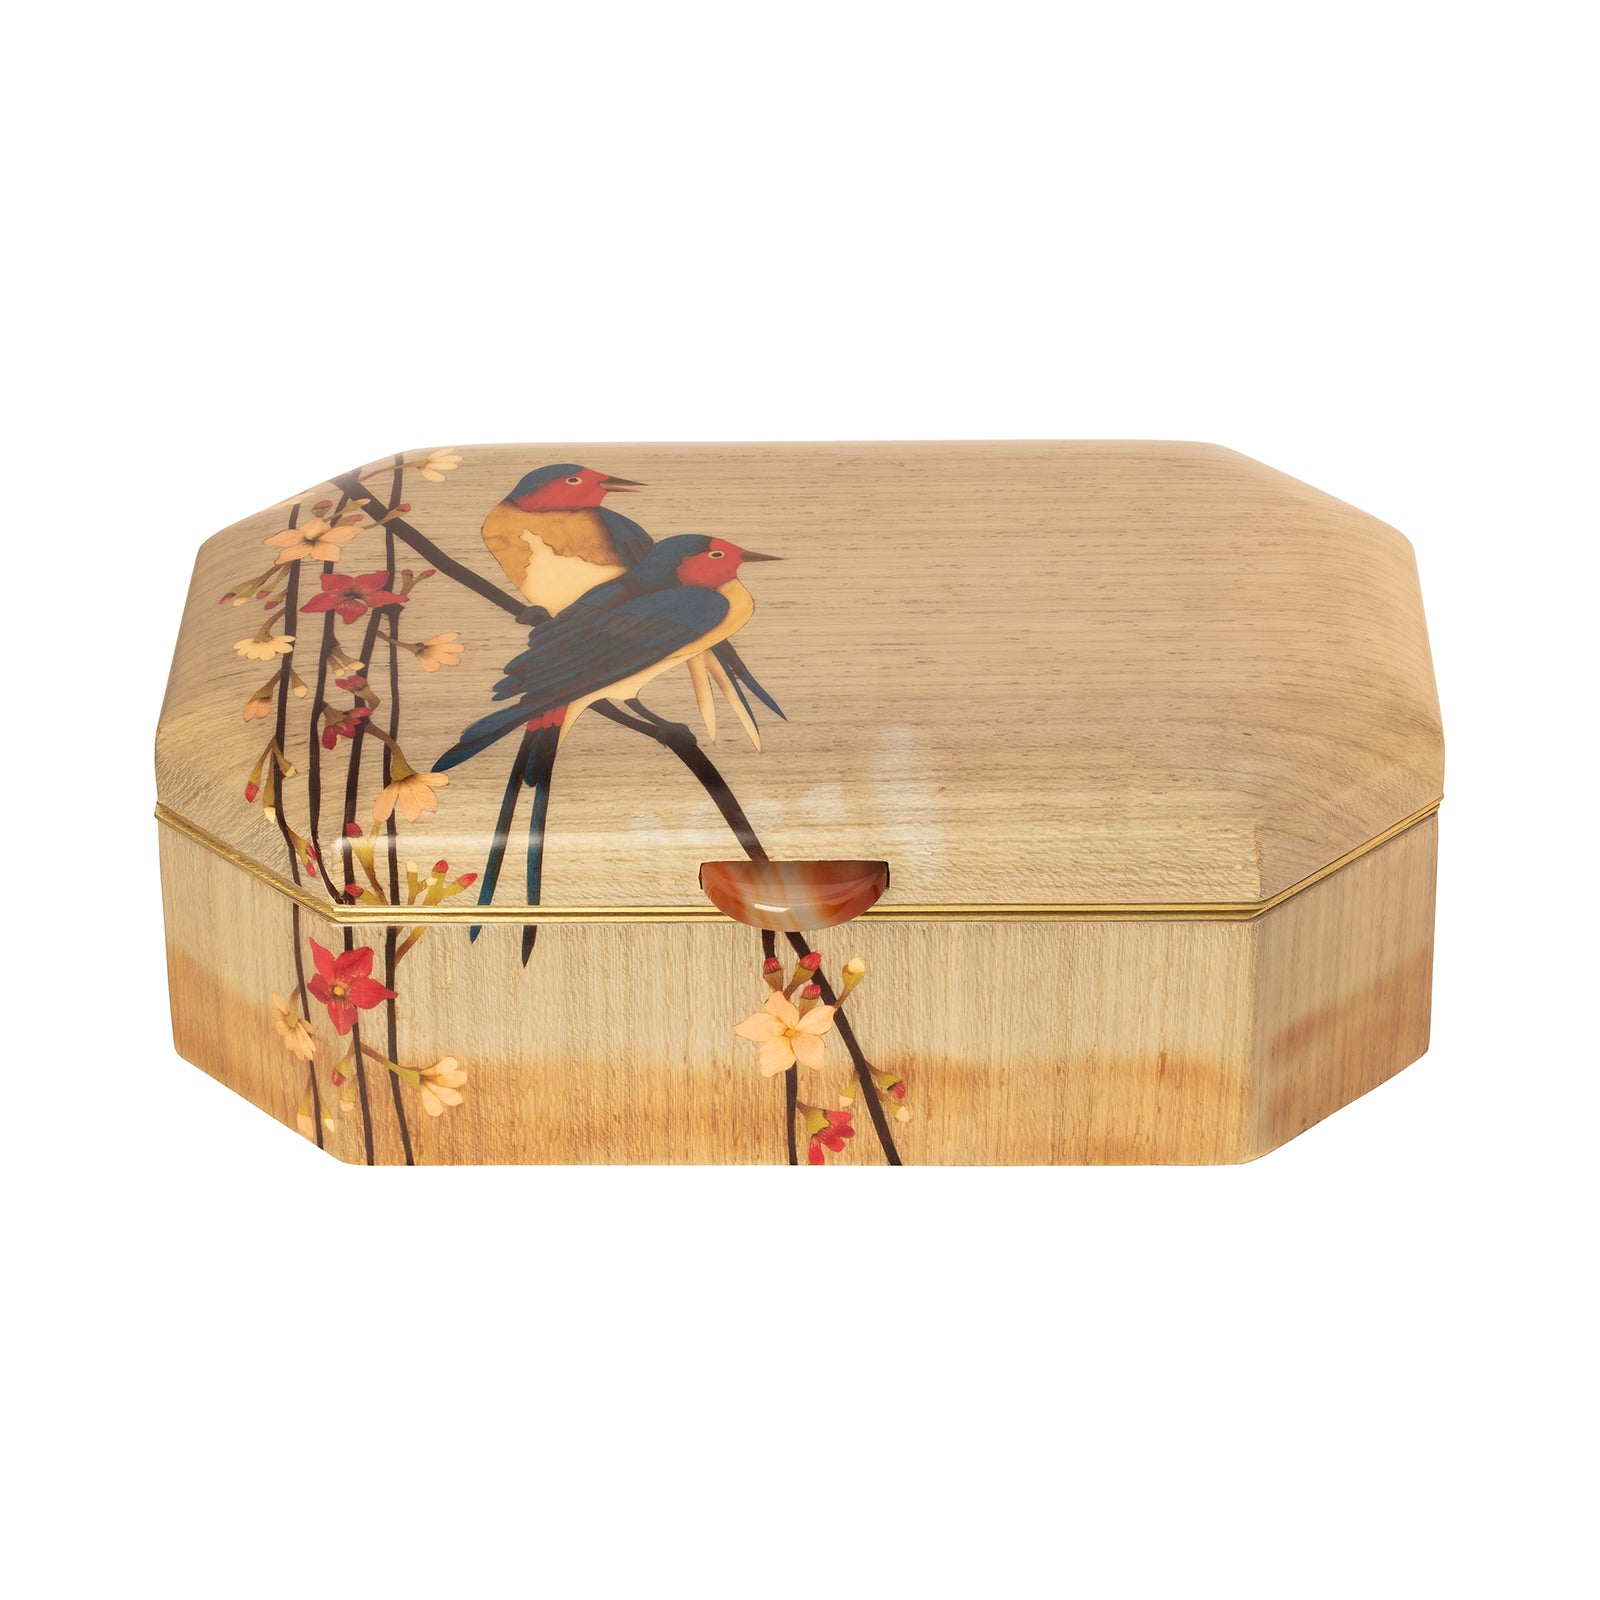 Silvia Furmanovich Marquetry Wood Jewlery Box - Birds - Home & Decor - Broken English Jewelry